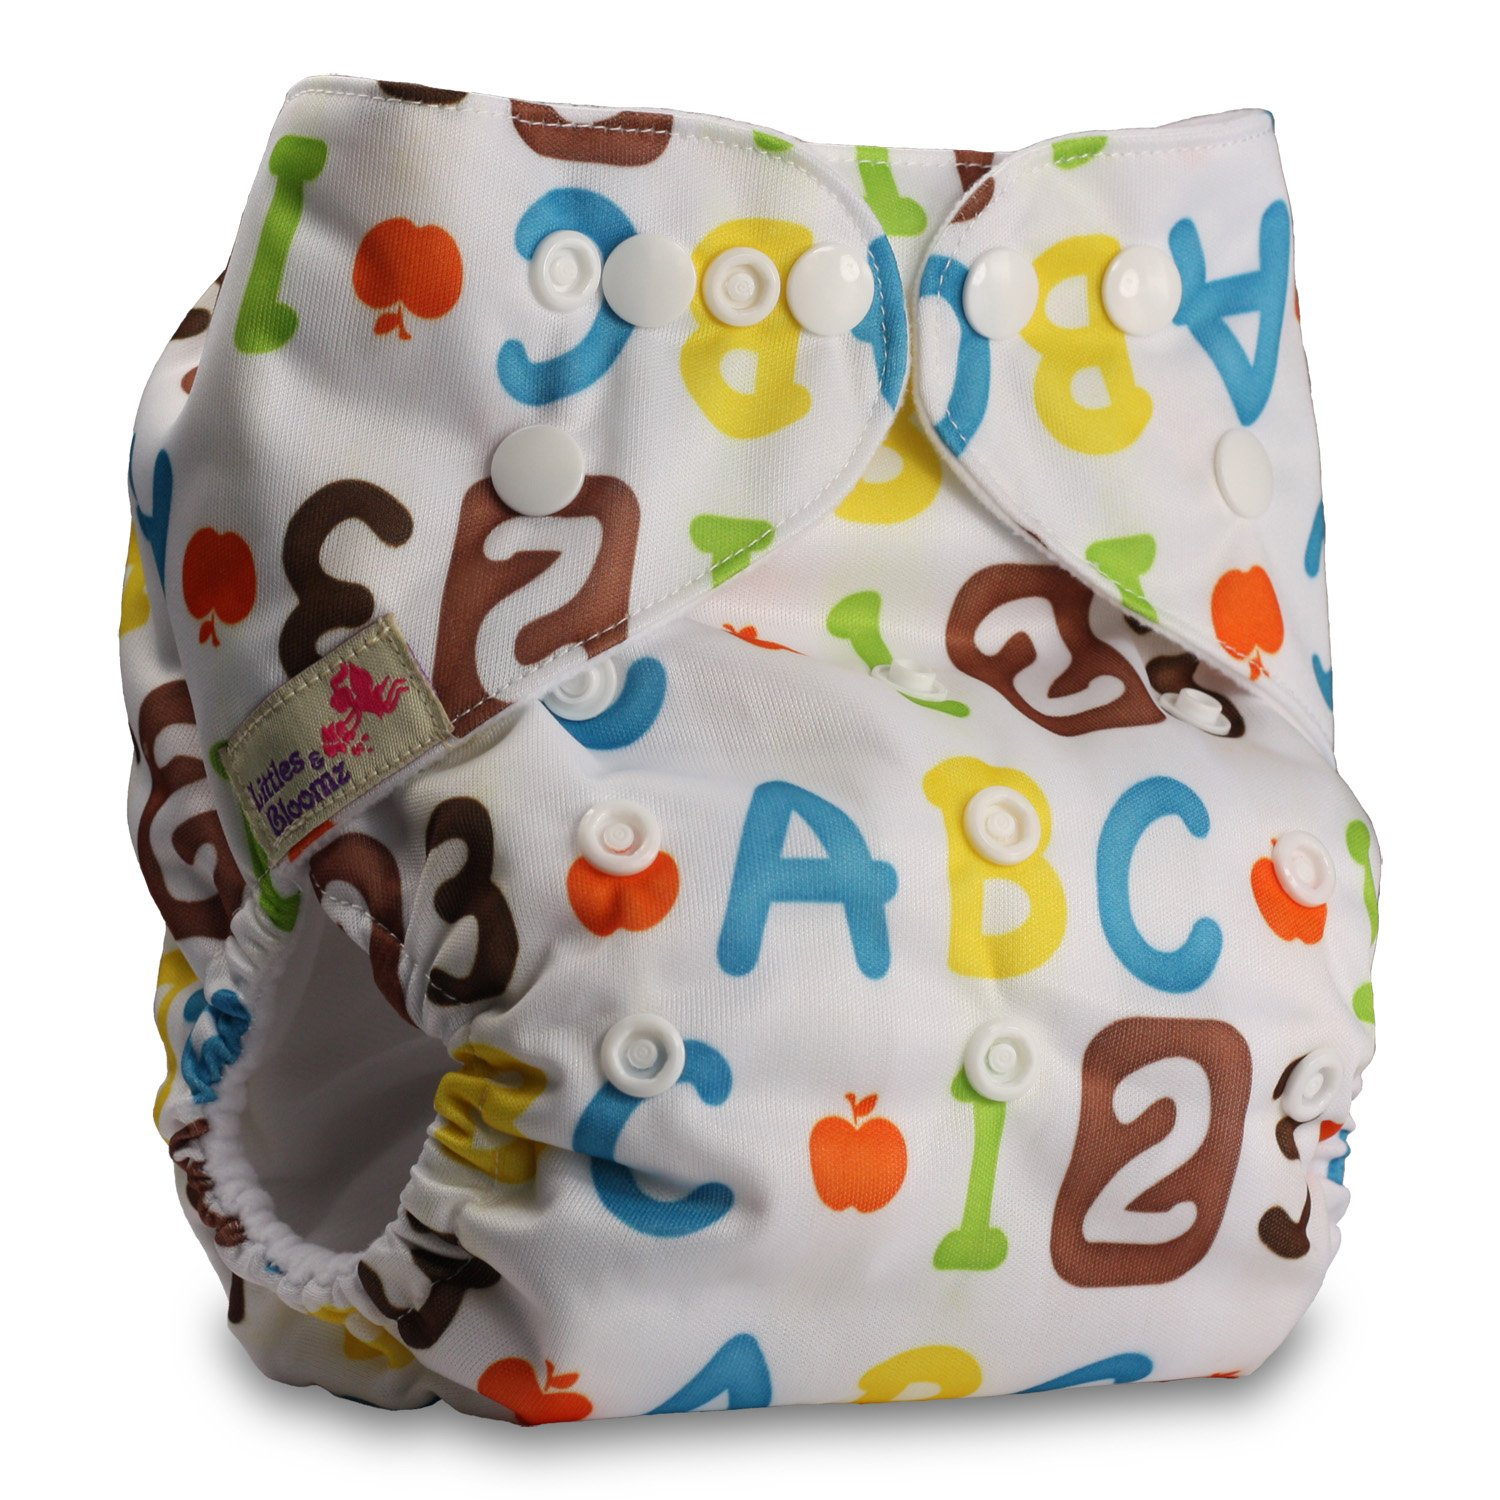 Littles & Bloomz, Reusable Pocket Cloth Nappy, Fastener: Popper, Set of 1, Pattern 44, With 1 Microfibre Insert